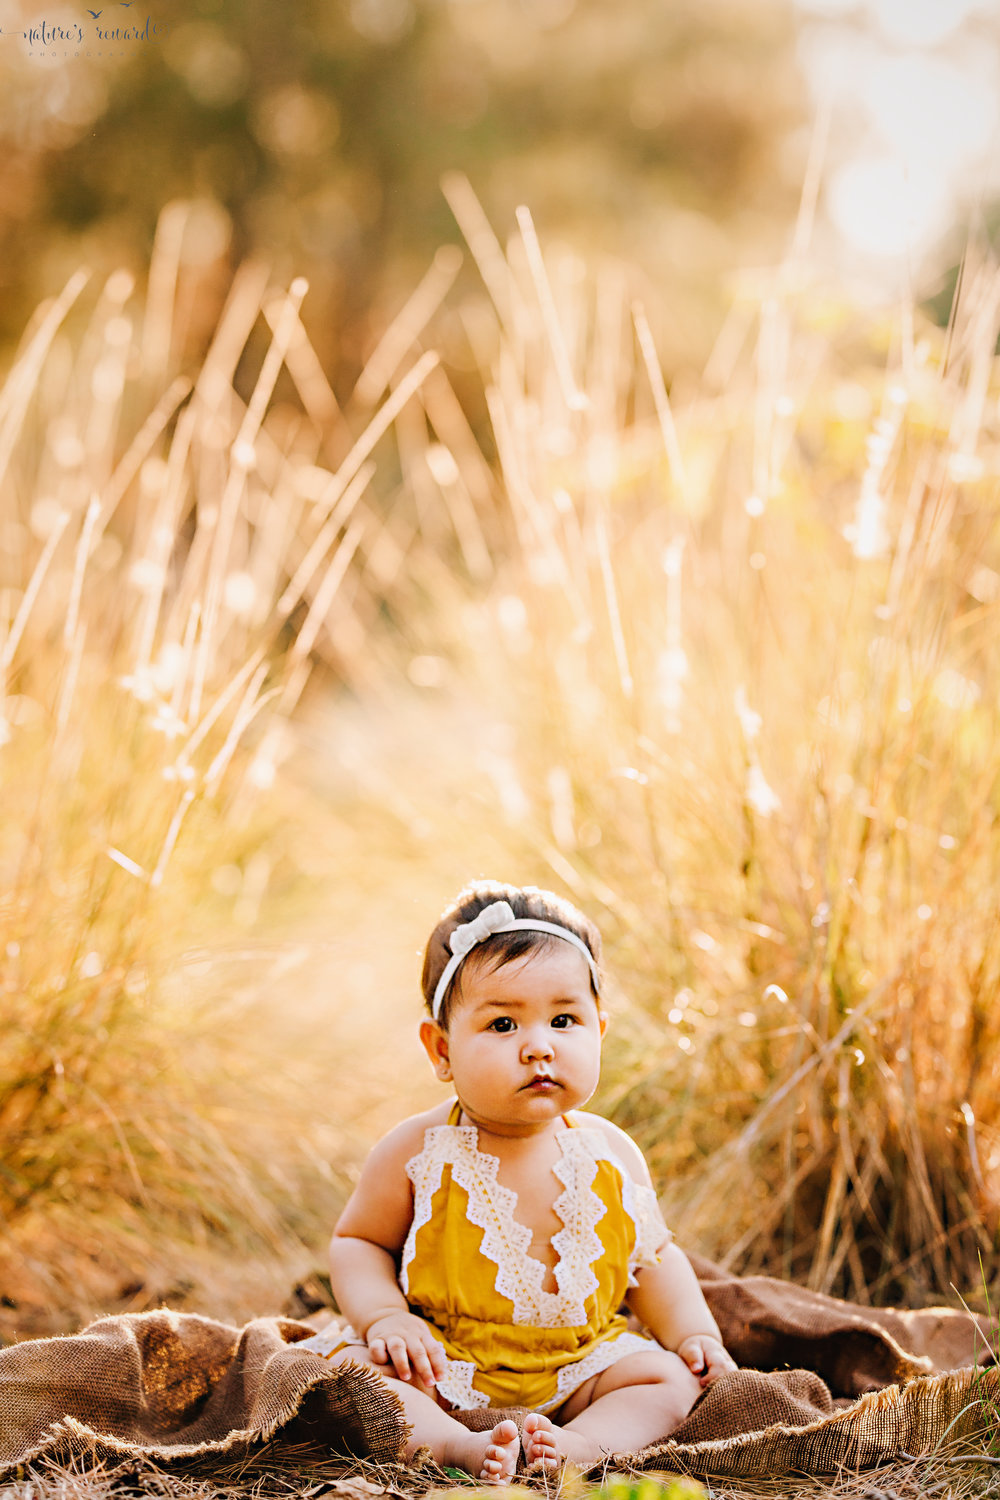 Lovely baby in a yellow and white lace romper in the tall yellow reeds wearing a white hair bow showing off her baby rolls in this sitter portrait by Nature's Reward Photography